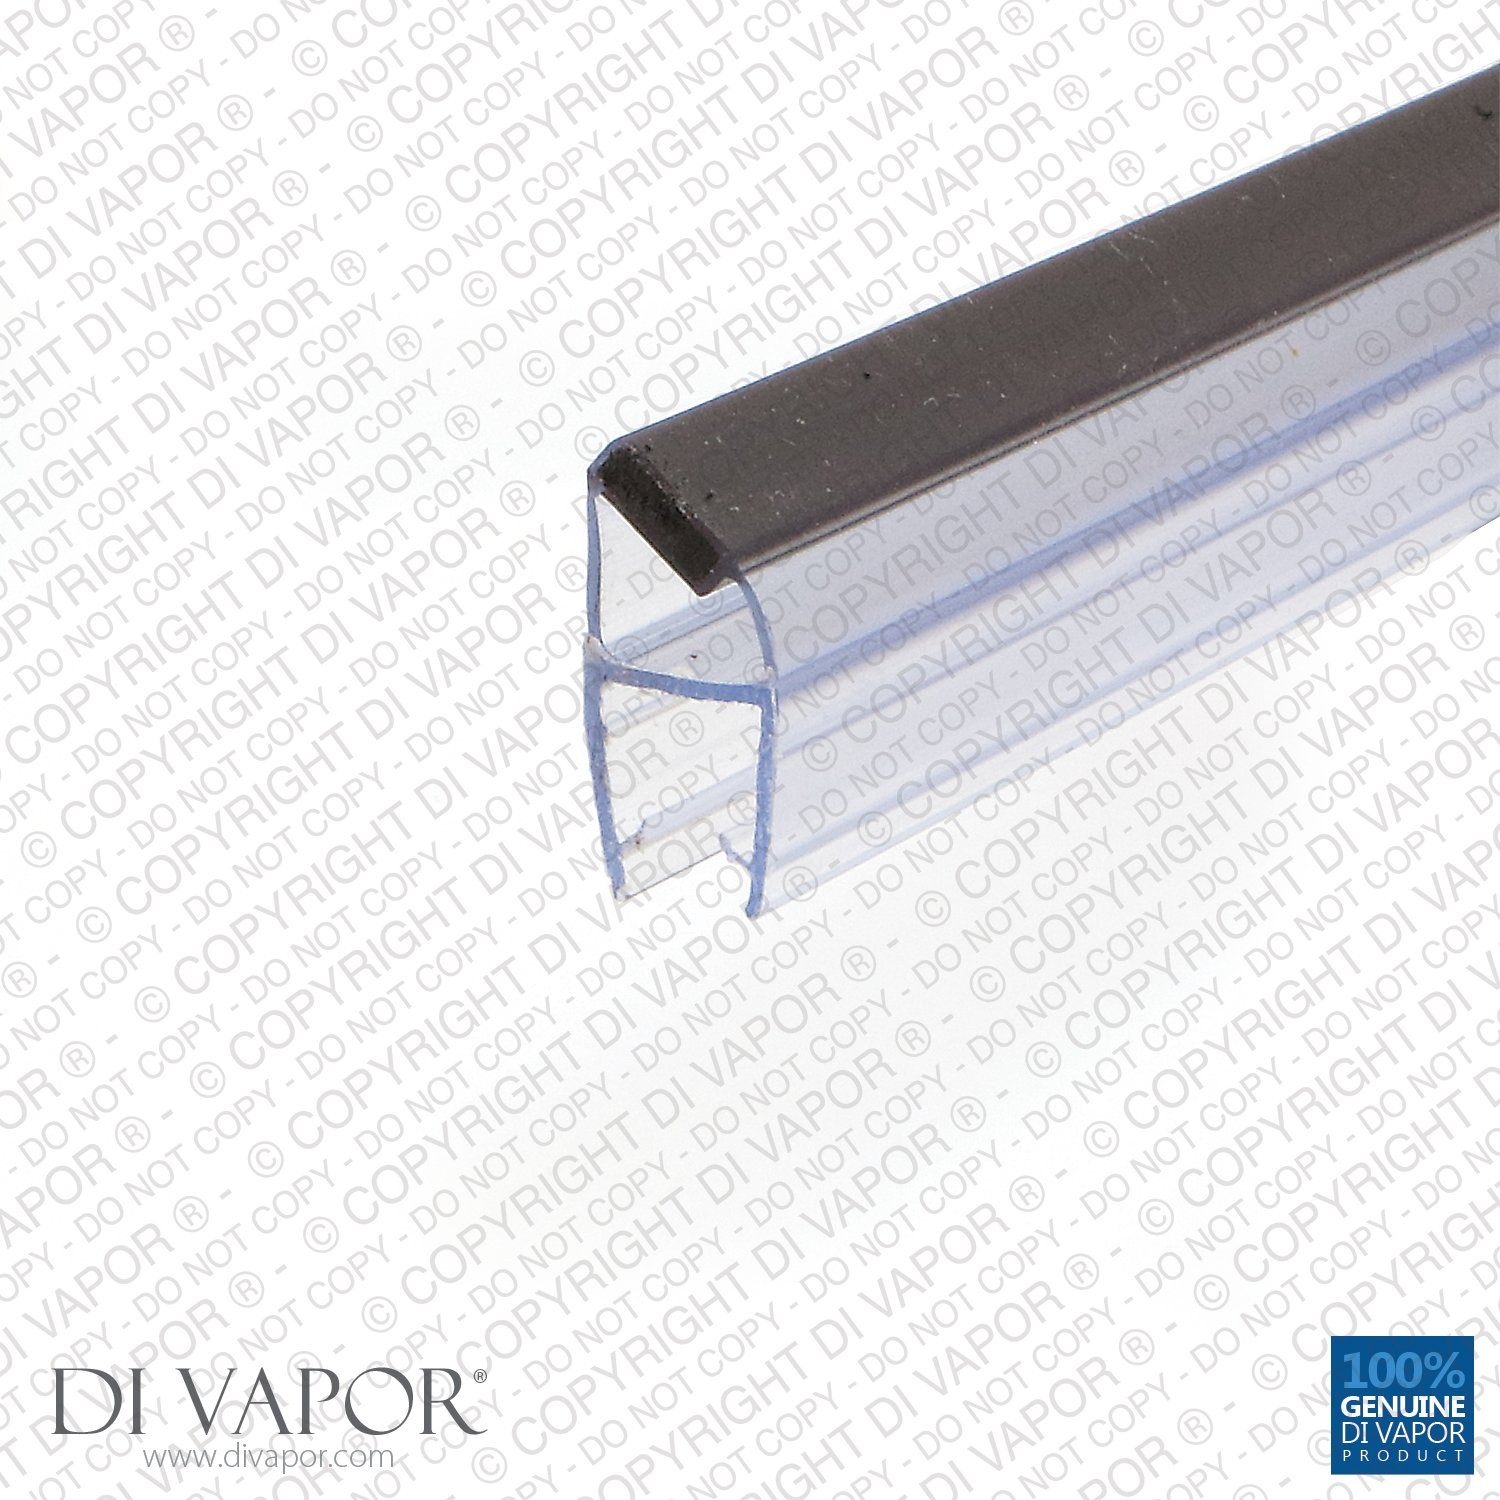 Di Vapor (R) Shower Magnetic Door Seal | 4-6mm/8mm/10mm Glass | 85cm/2m (Glass Thickness: 4-6mm, Seal Length: 85cm)